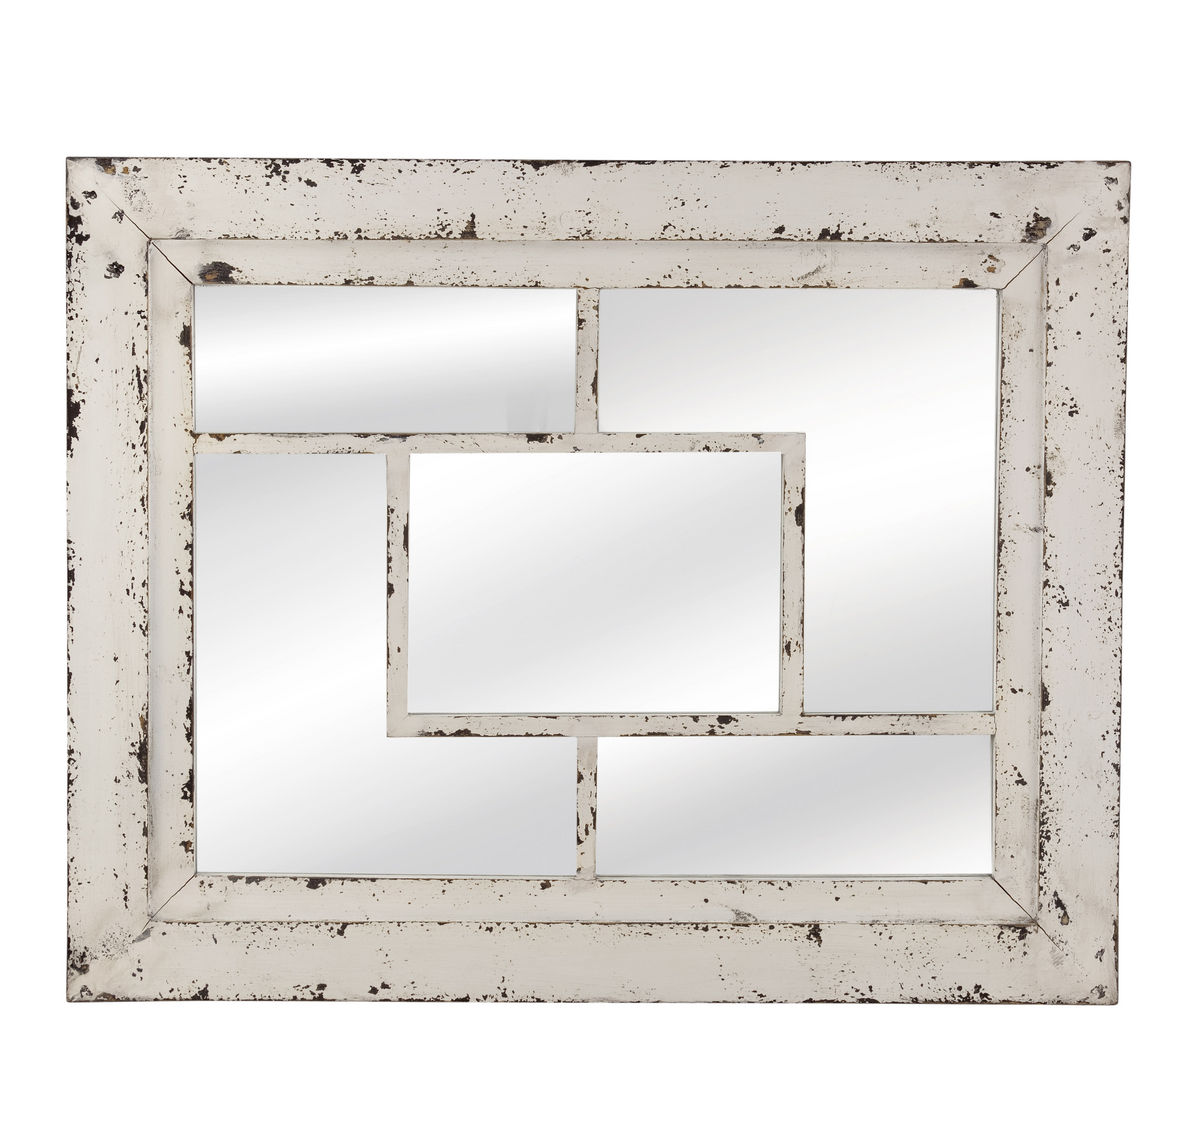 rustic wall mirrors farmhouse harper wall mirror rustic white 32 40h m3643ec decor south